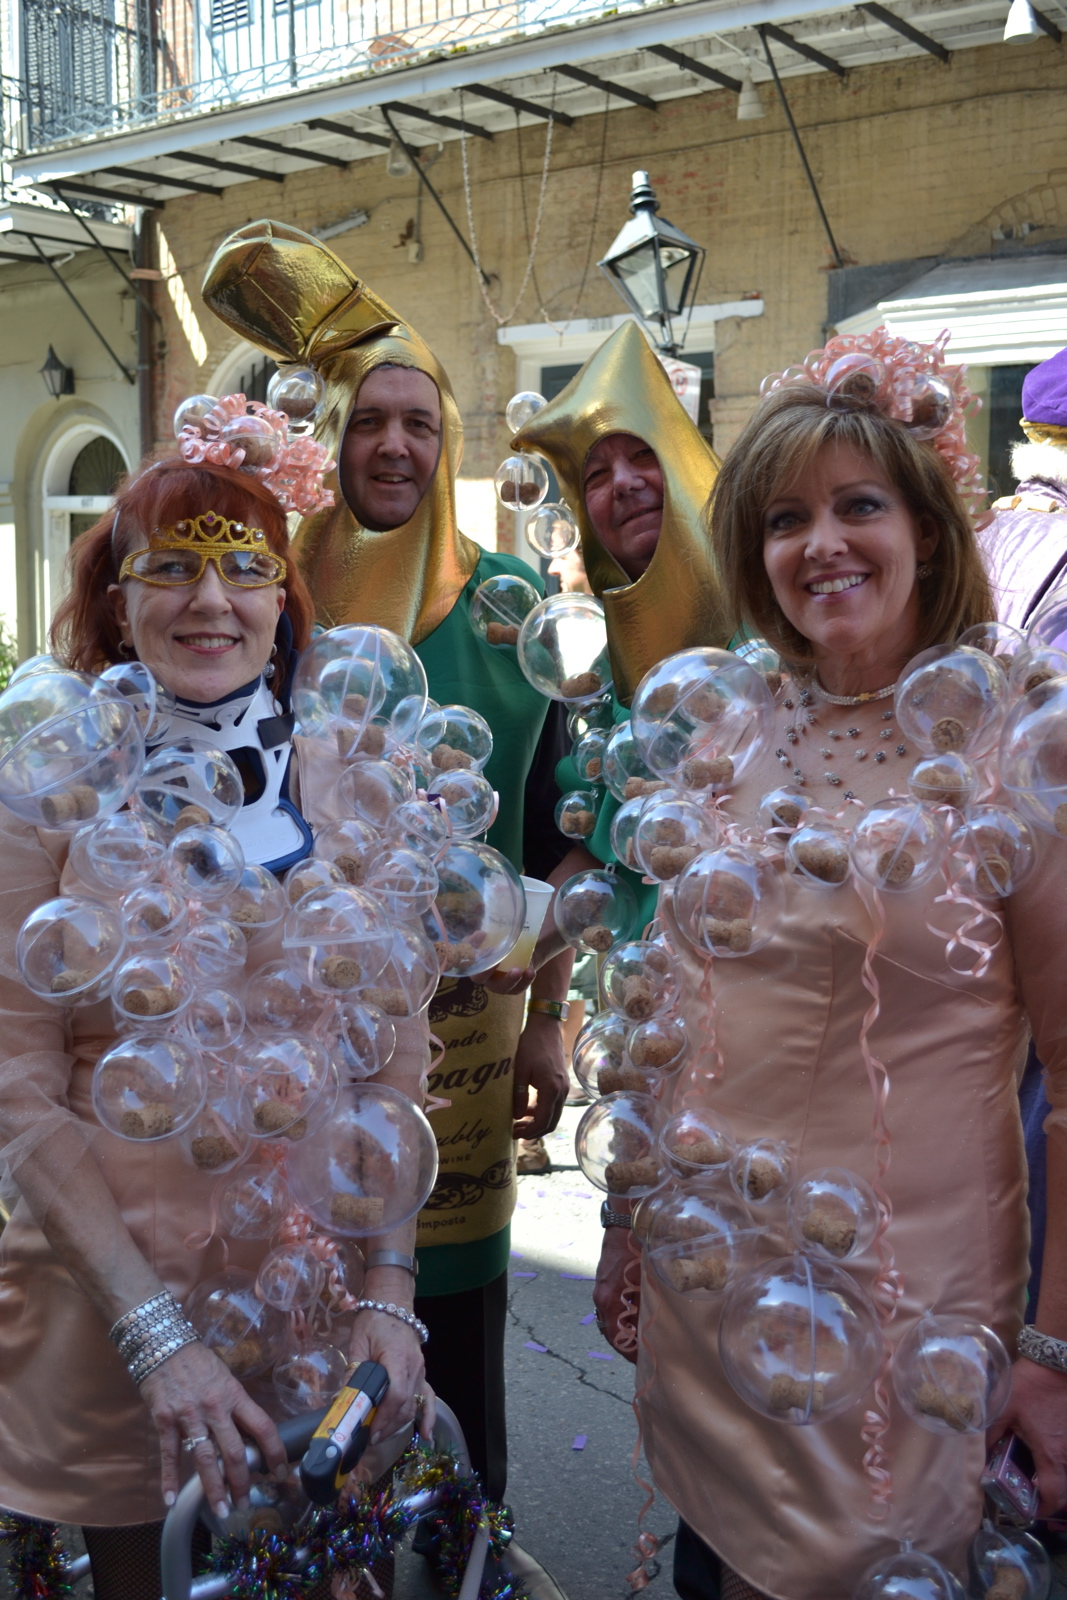 Krewes getting ready for parades in the days before Mardi Gras